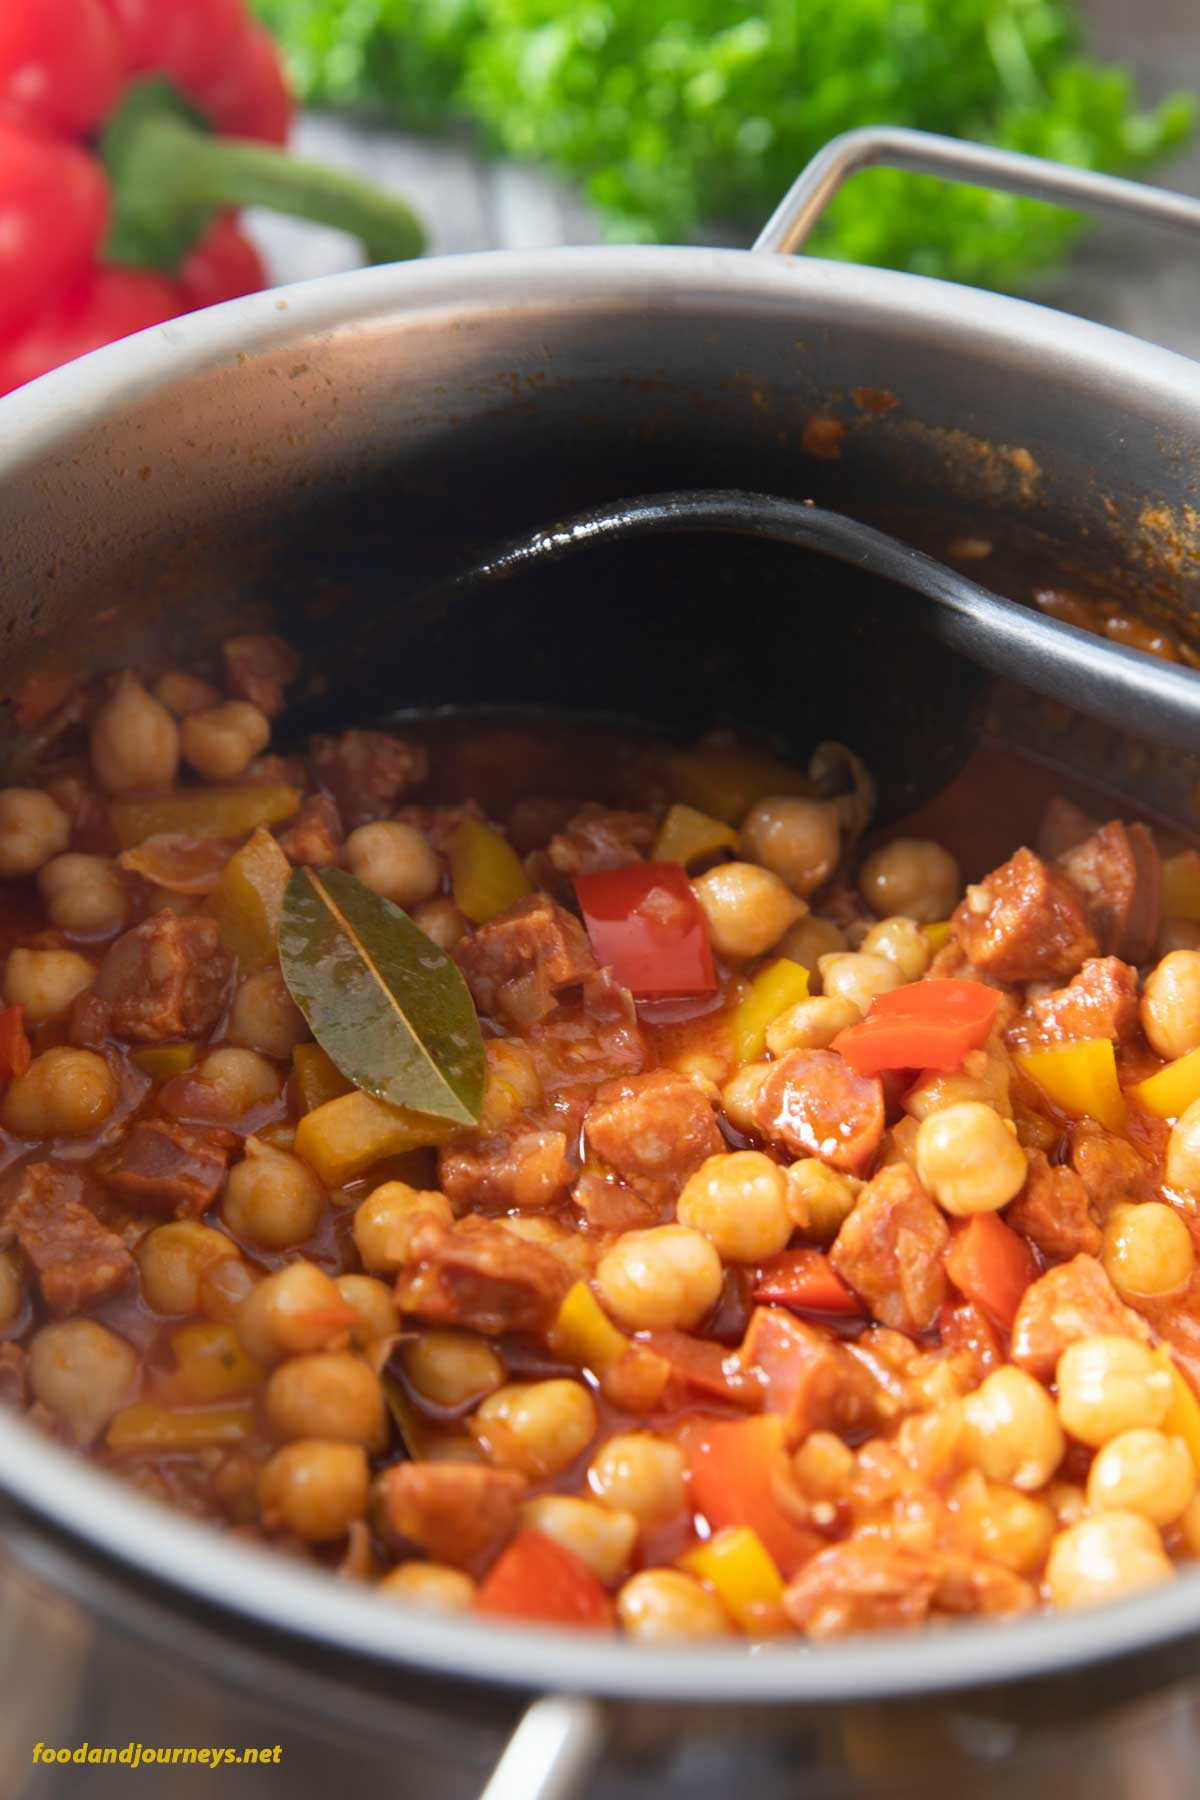 A closer shot of a pot of Spanish Chorizo and Chickpea Stew, highlighting the lovely color of the dish, as well as the dried bay leaf on top.